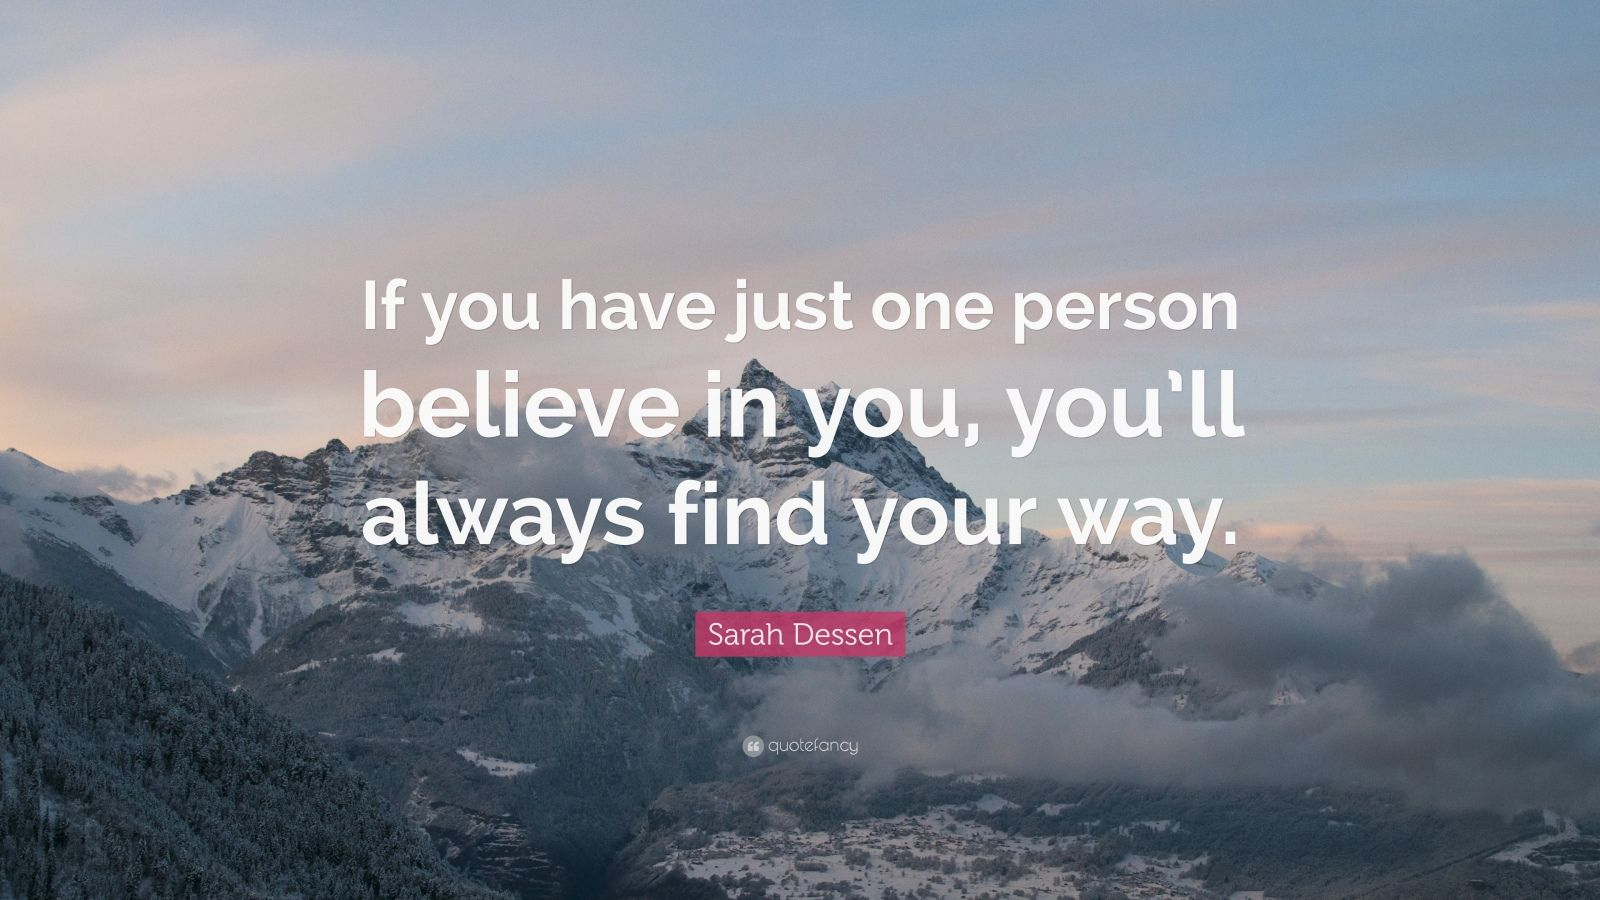 """Sarah Dessen Quote: """"If you have just one person believe in you, you'll always find your way."""""""